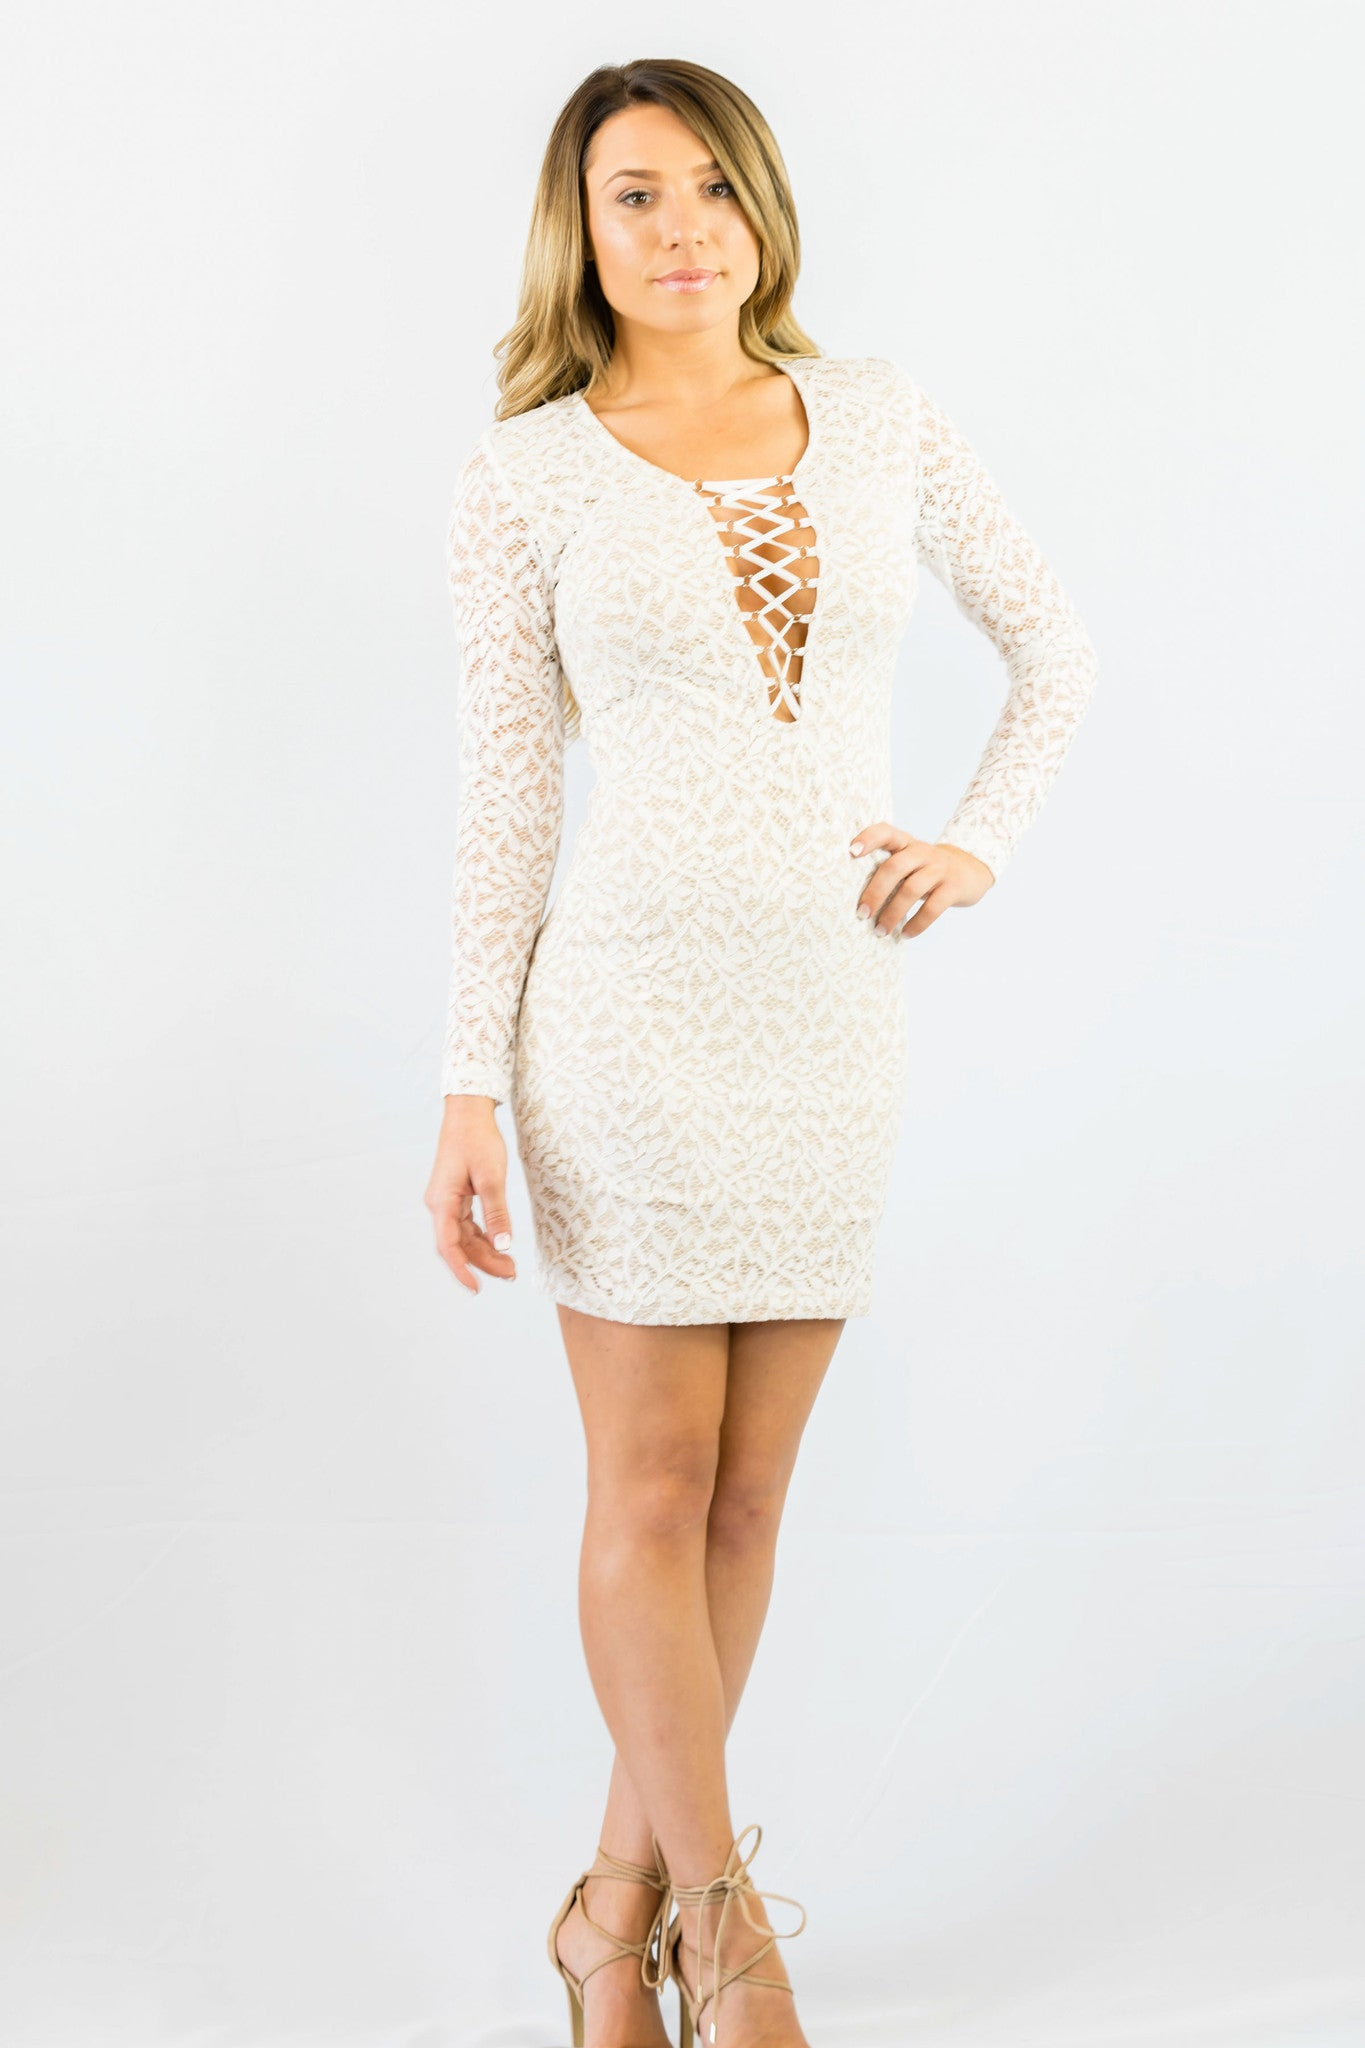 WYLDR In Too Deep Ivory Lace Bodycon Dress White - DRESSES - WYLDR - Free Vibrationz - 1